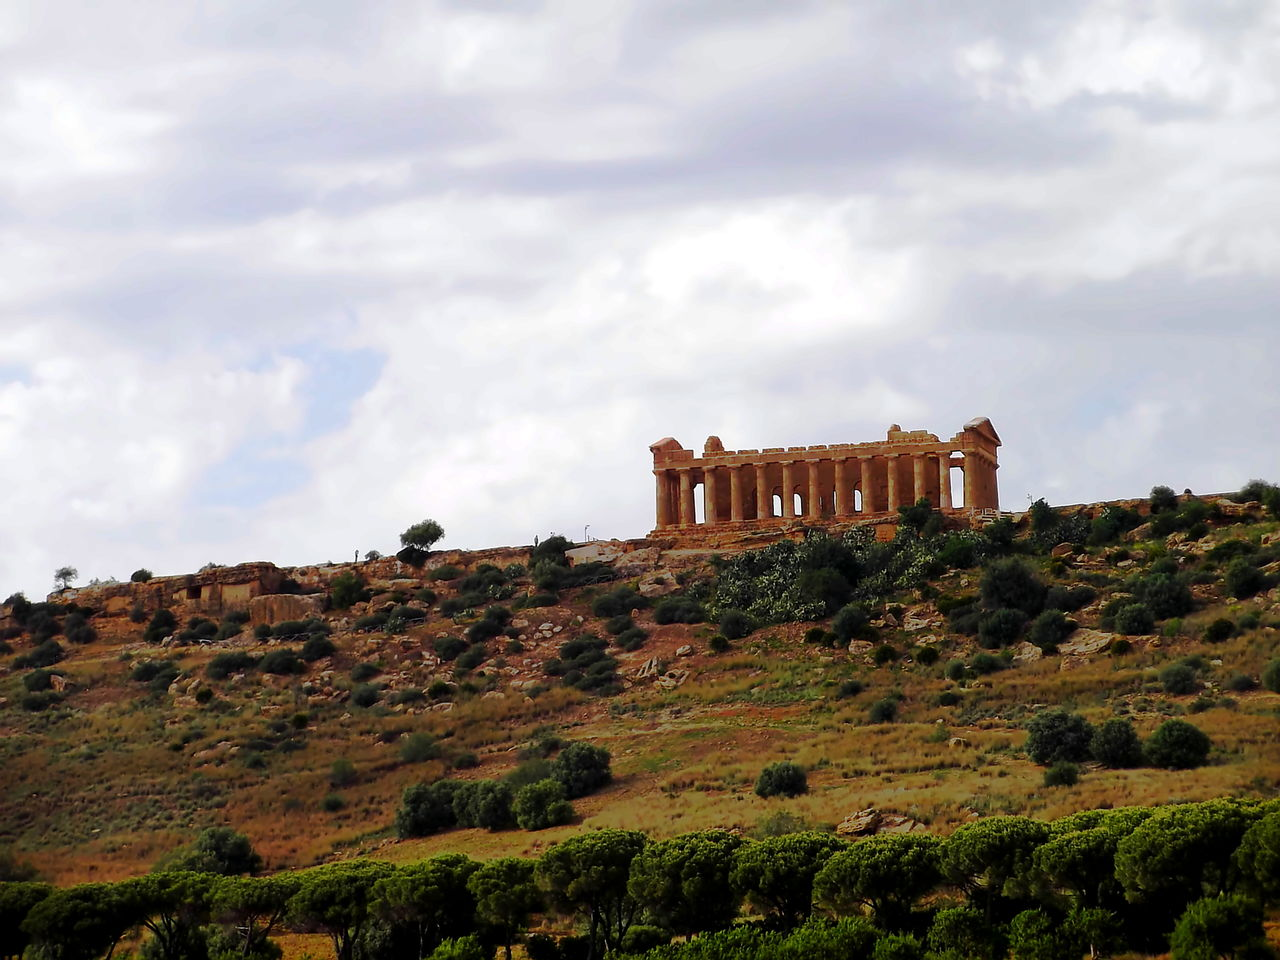 Agrigento Antica Grecia Architecture Building Exterior Cielo Nuvoloso Cloud - Sky Grass History Low Angle View Natura Nature No People Outdoors Sicily Sito Archologico Tempio Dorico Tree Valle Dei Templi Veduta Dalla Macchina Vegetazione